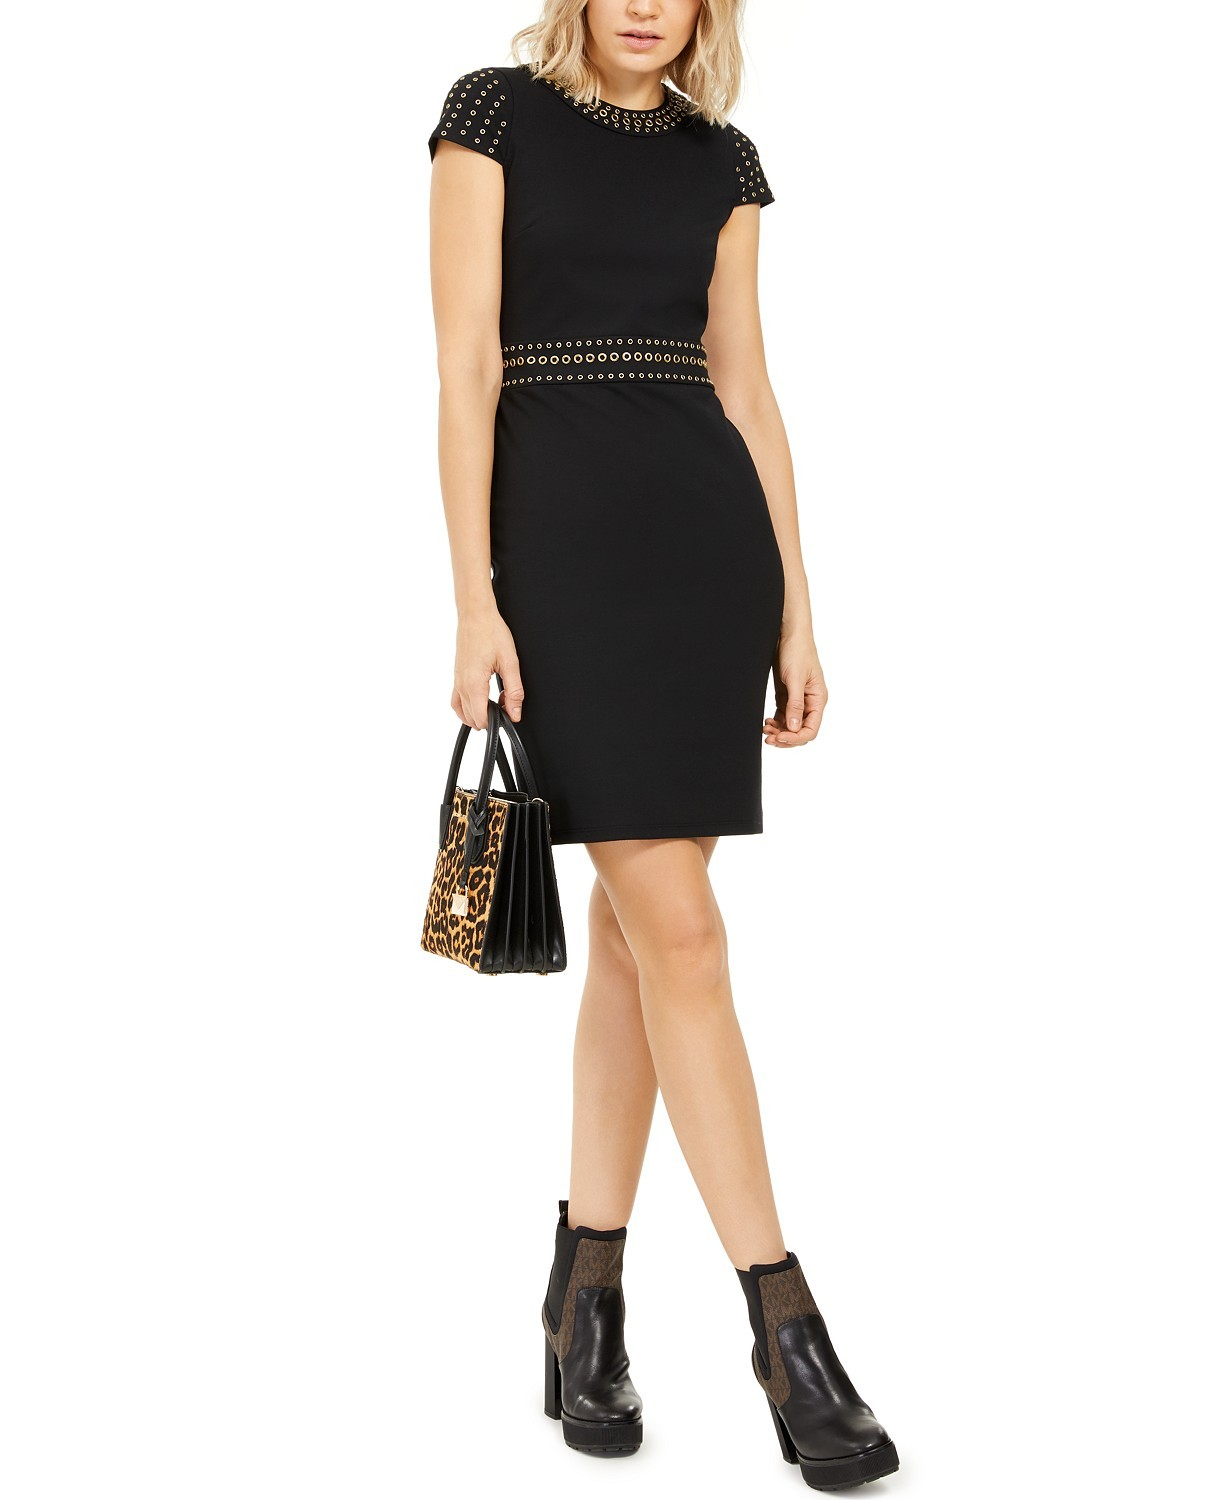 Primary image for Michael Michael Kors Grommeted Cap-Sleeve Sheath Dress